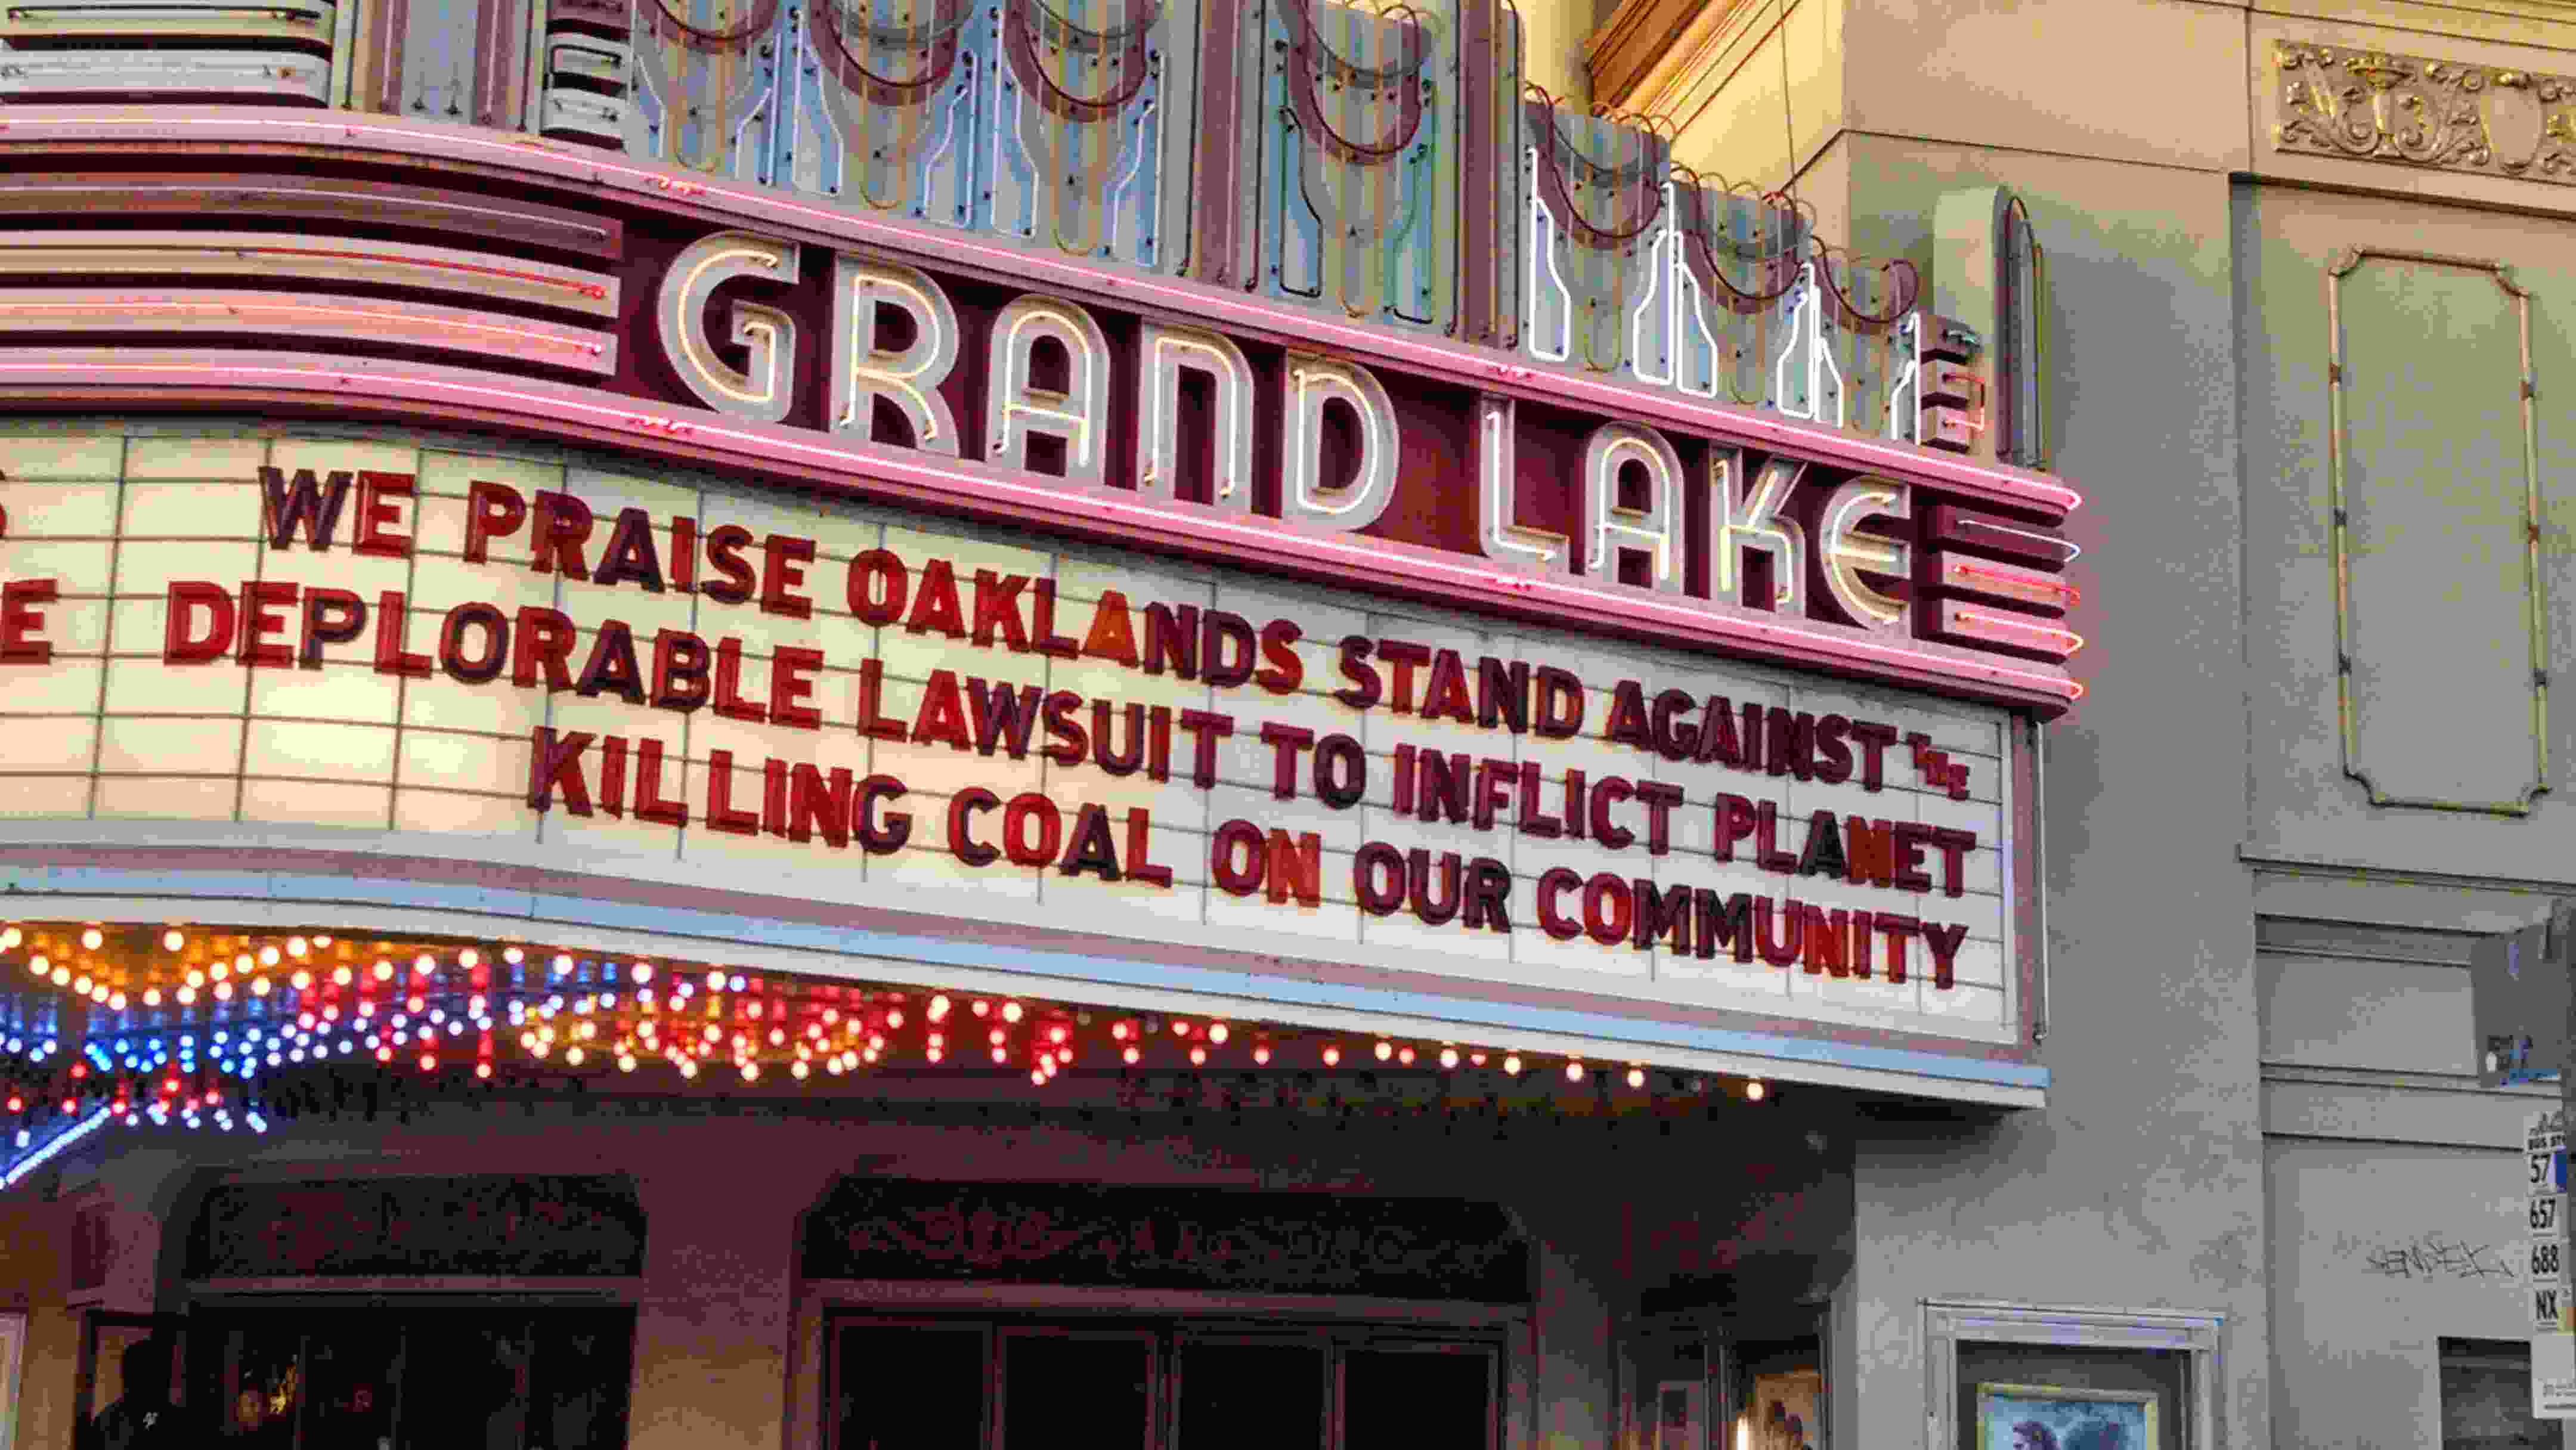 Grand Lake Theater marquee deploring Tagami's lawsuit against the City of Oakland